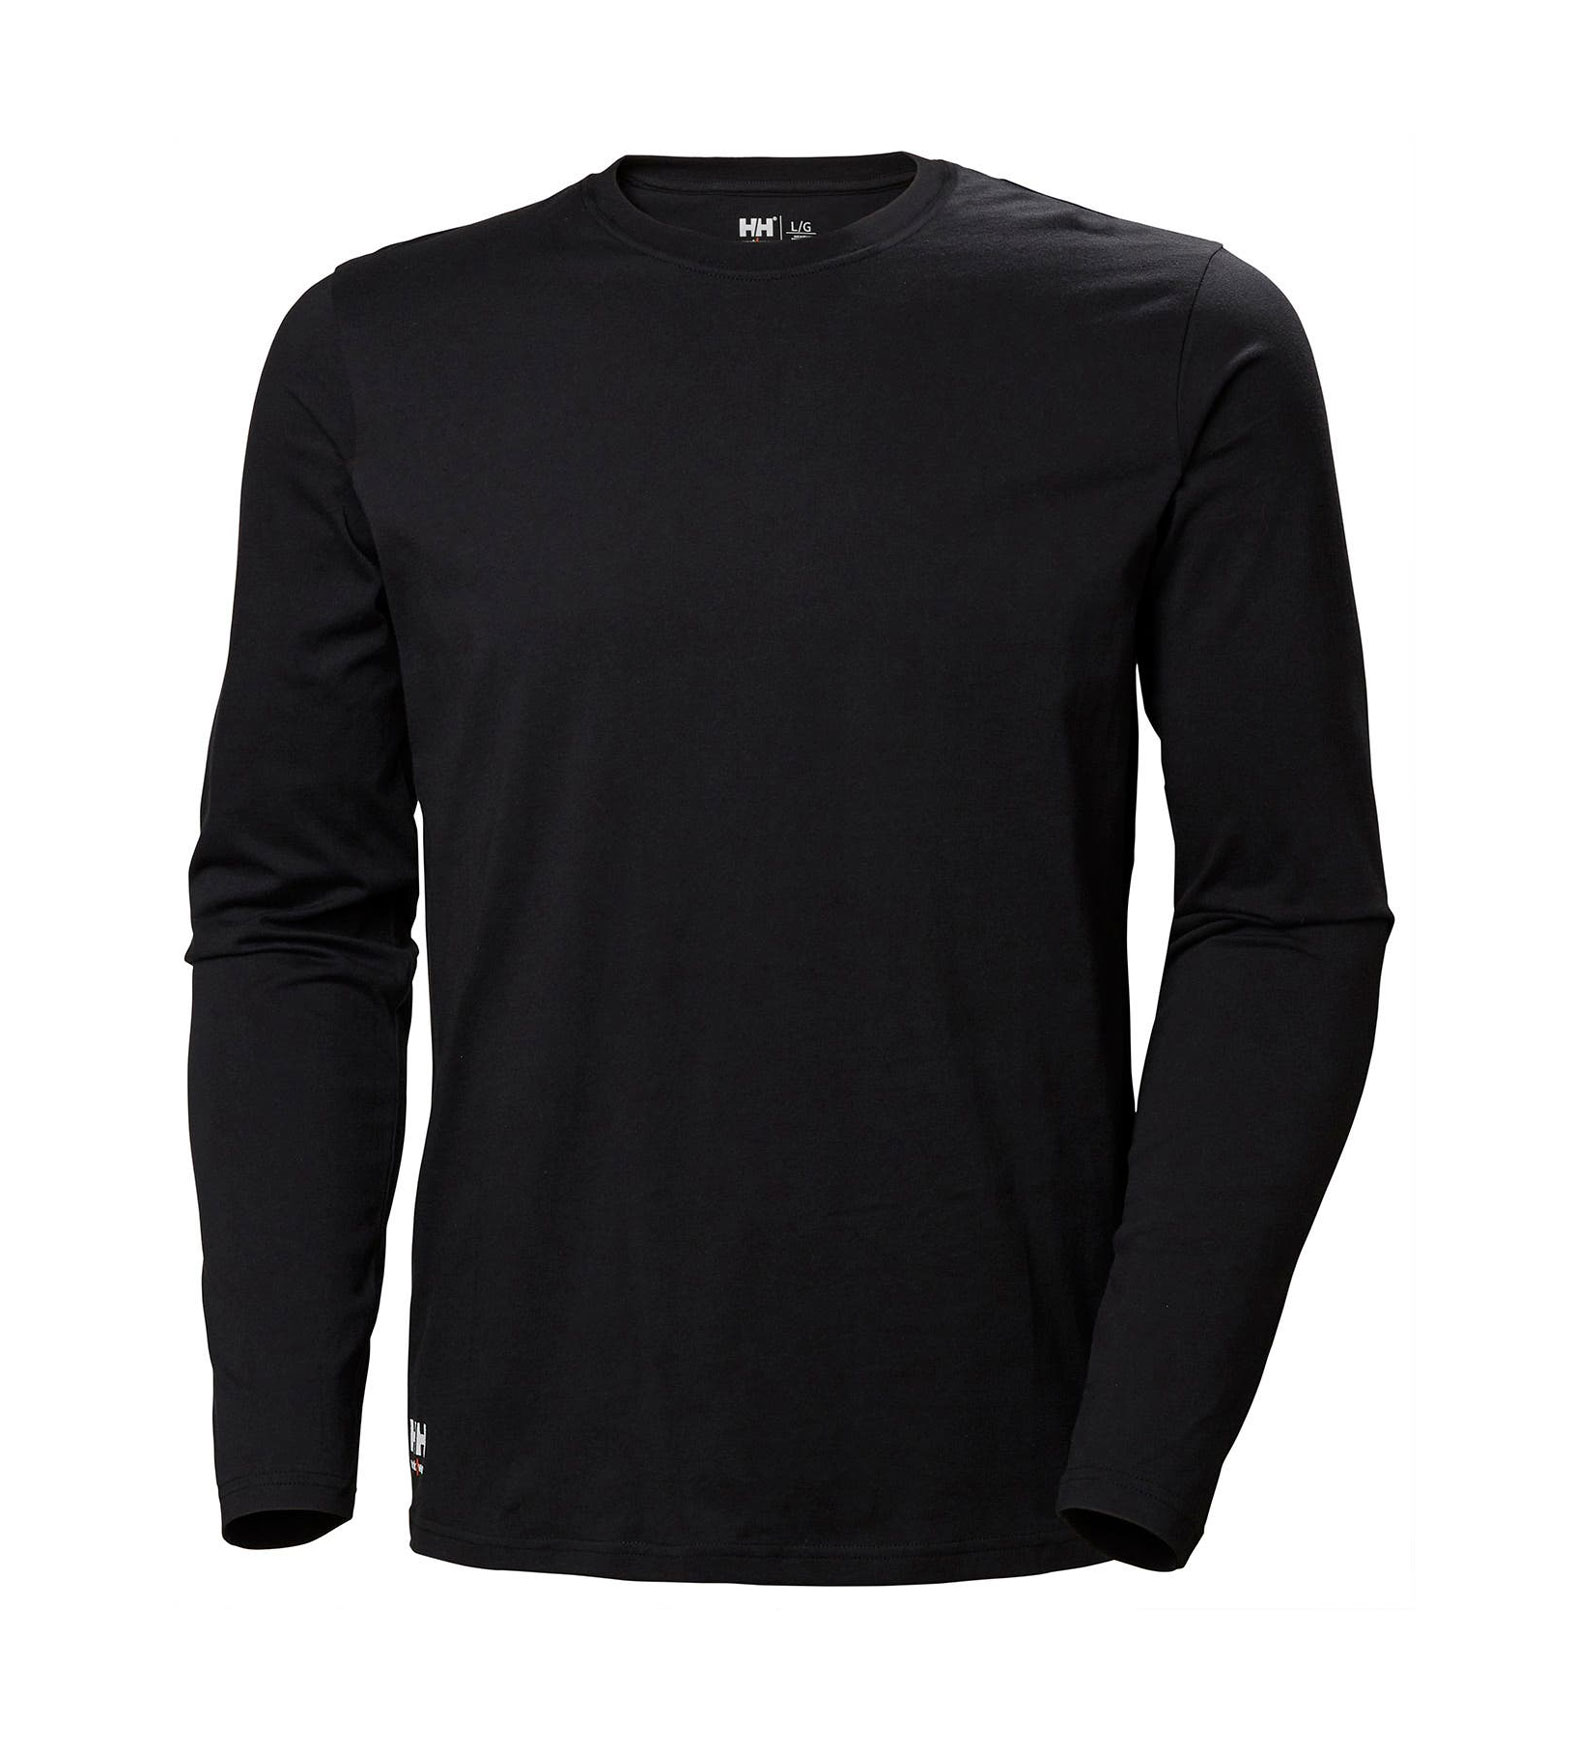 Helly Hansen Mens Manchester Long Sleeve T-Shirt